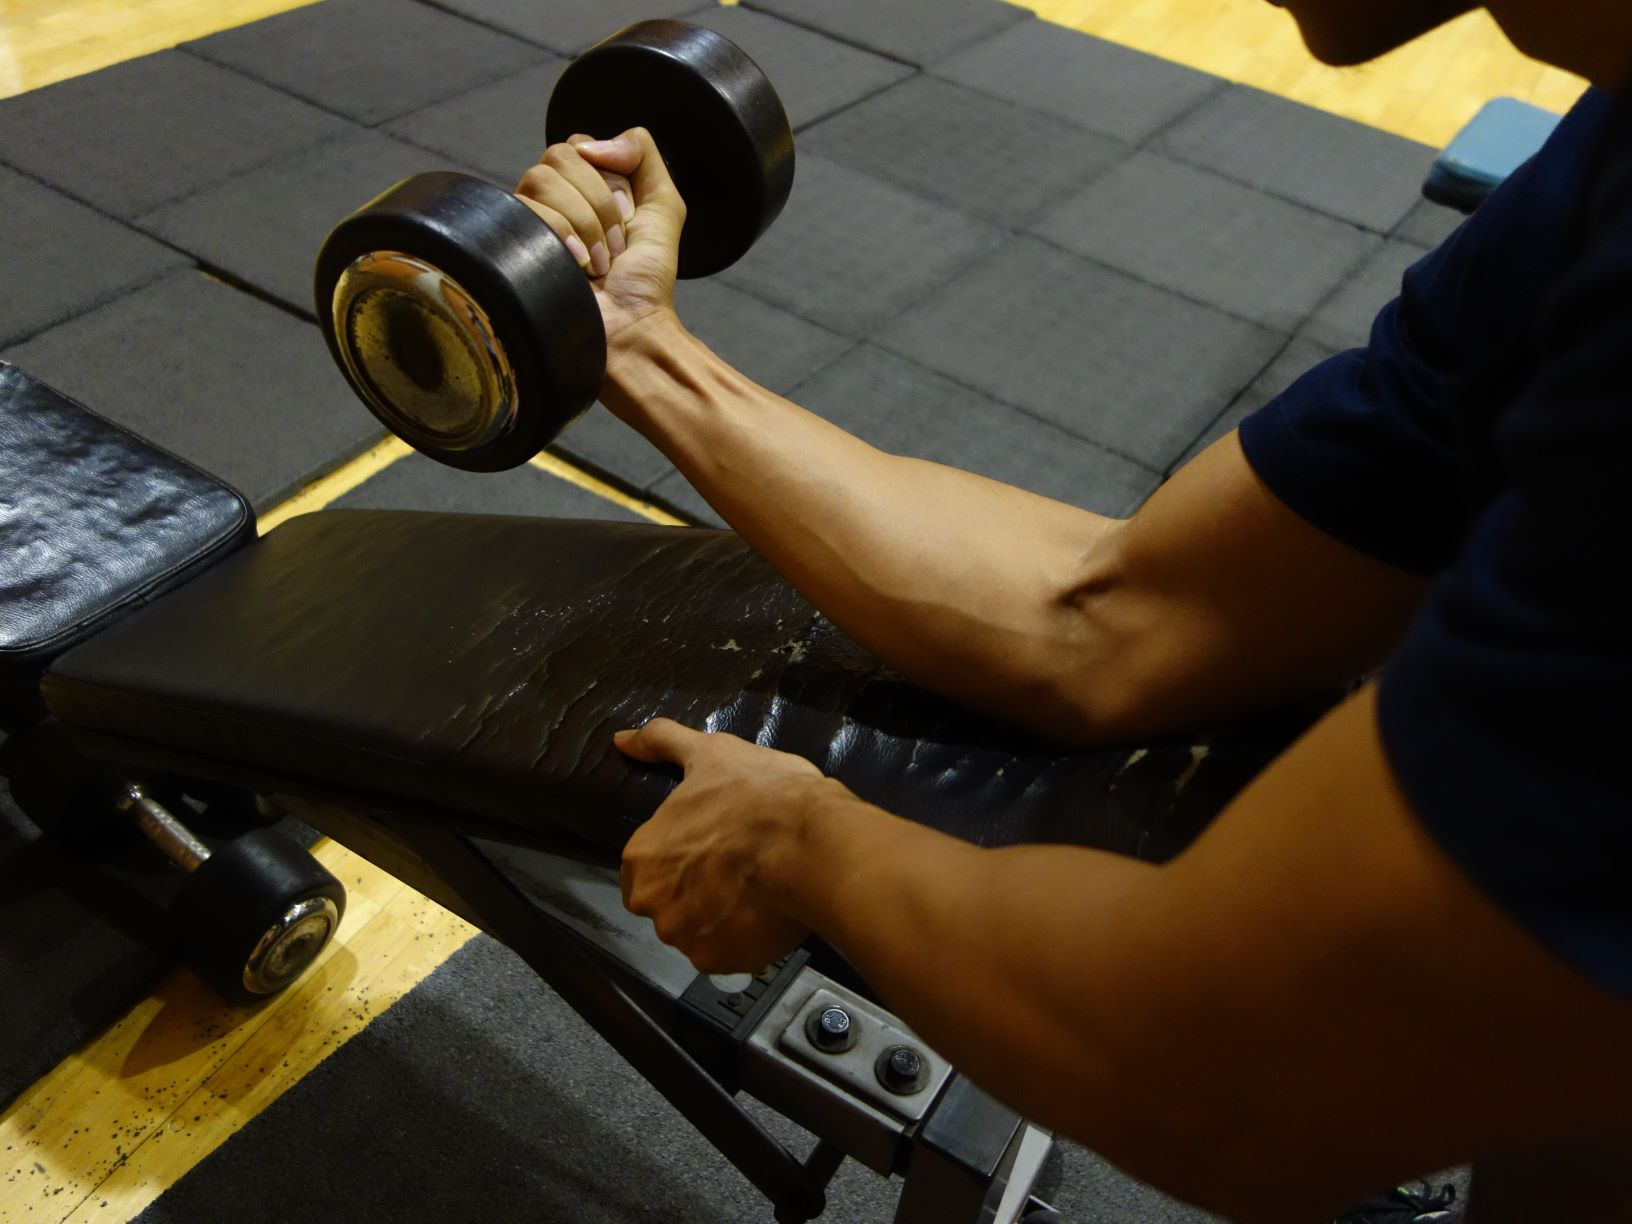 How to Do Wrist Curls for Bigger Forearm